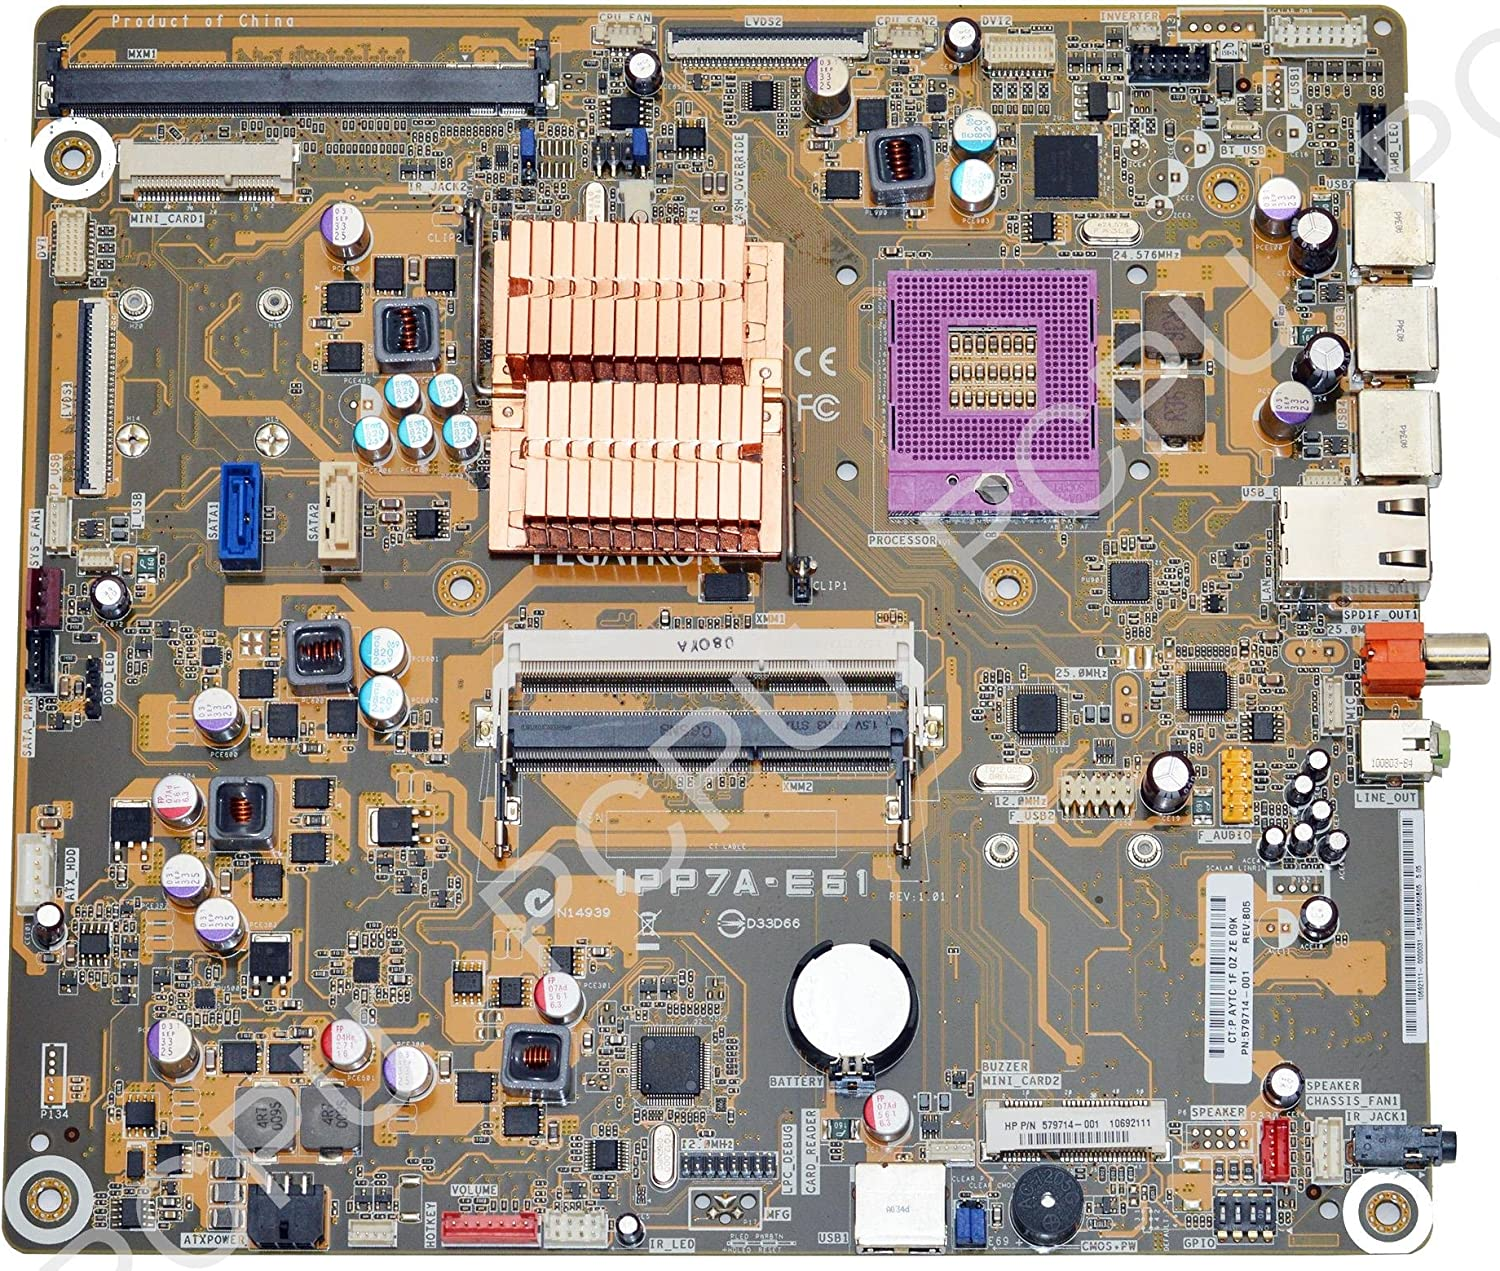 579714-001 HP Touchsmart AIO TS 9100 Intel Motherboard s478